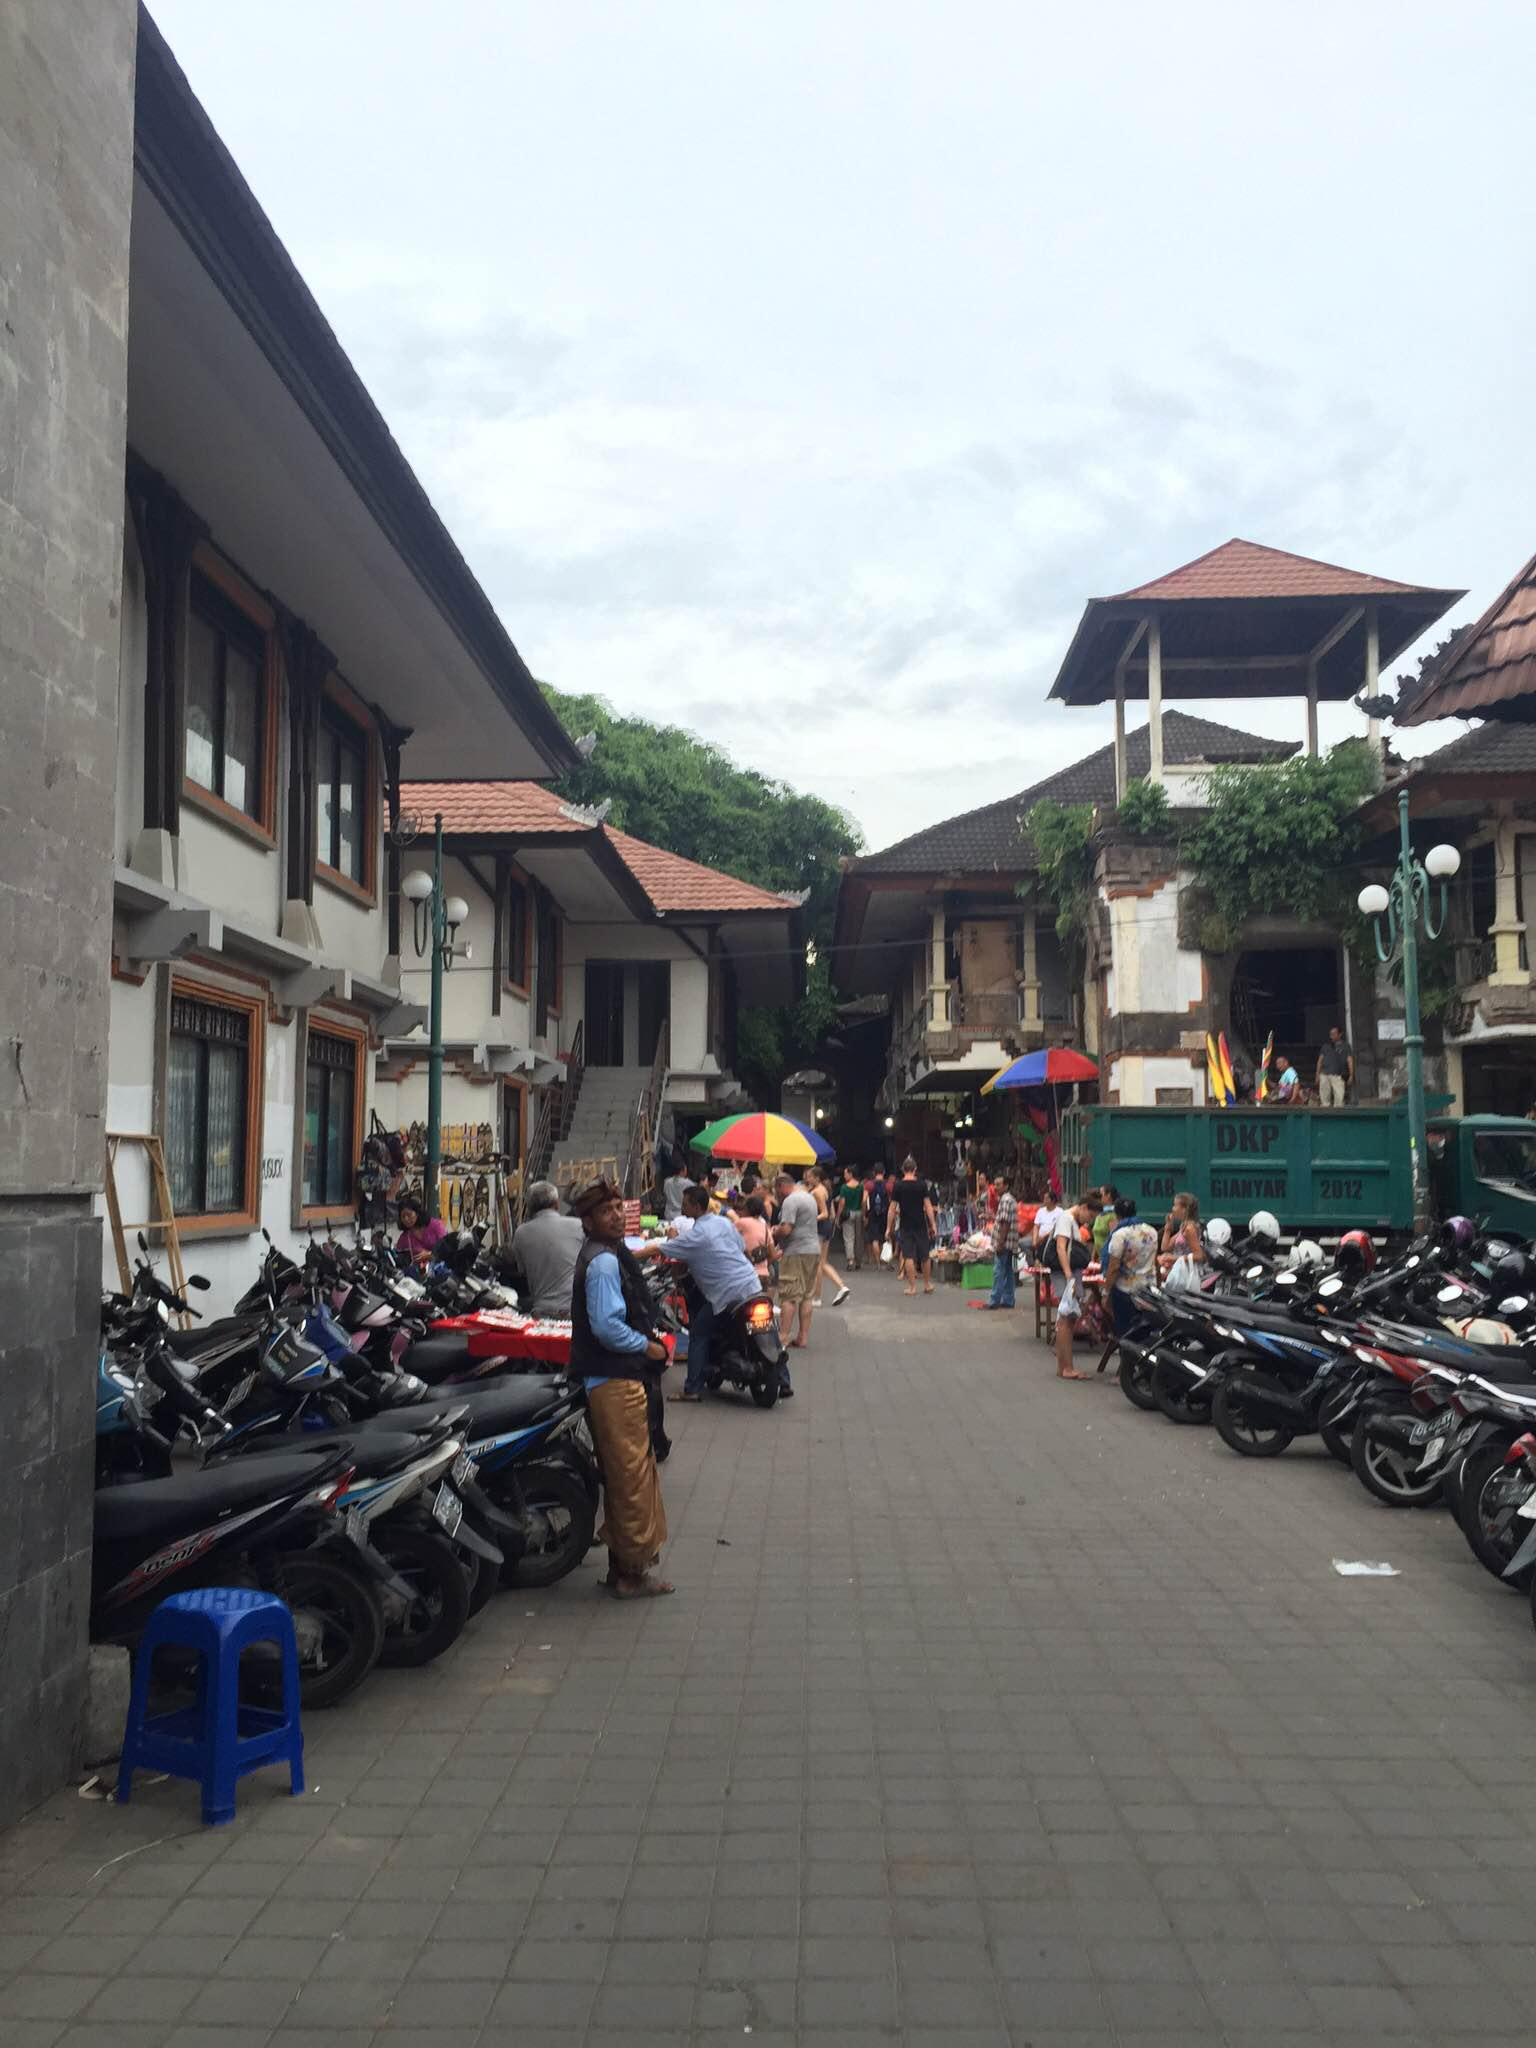 Market at Ubud